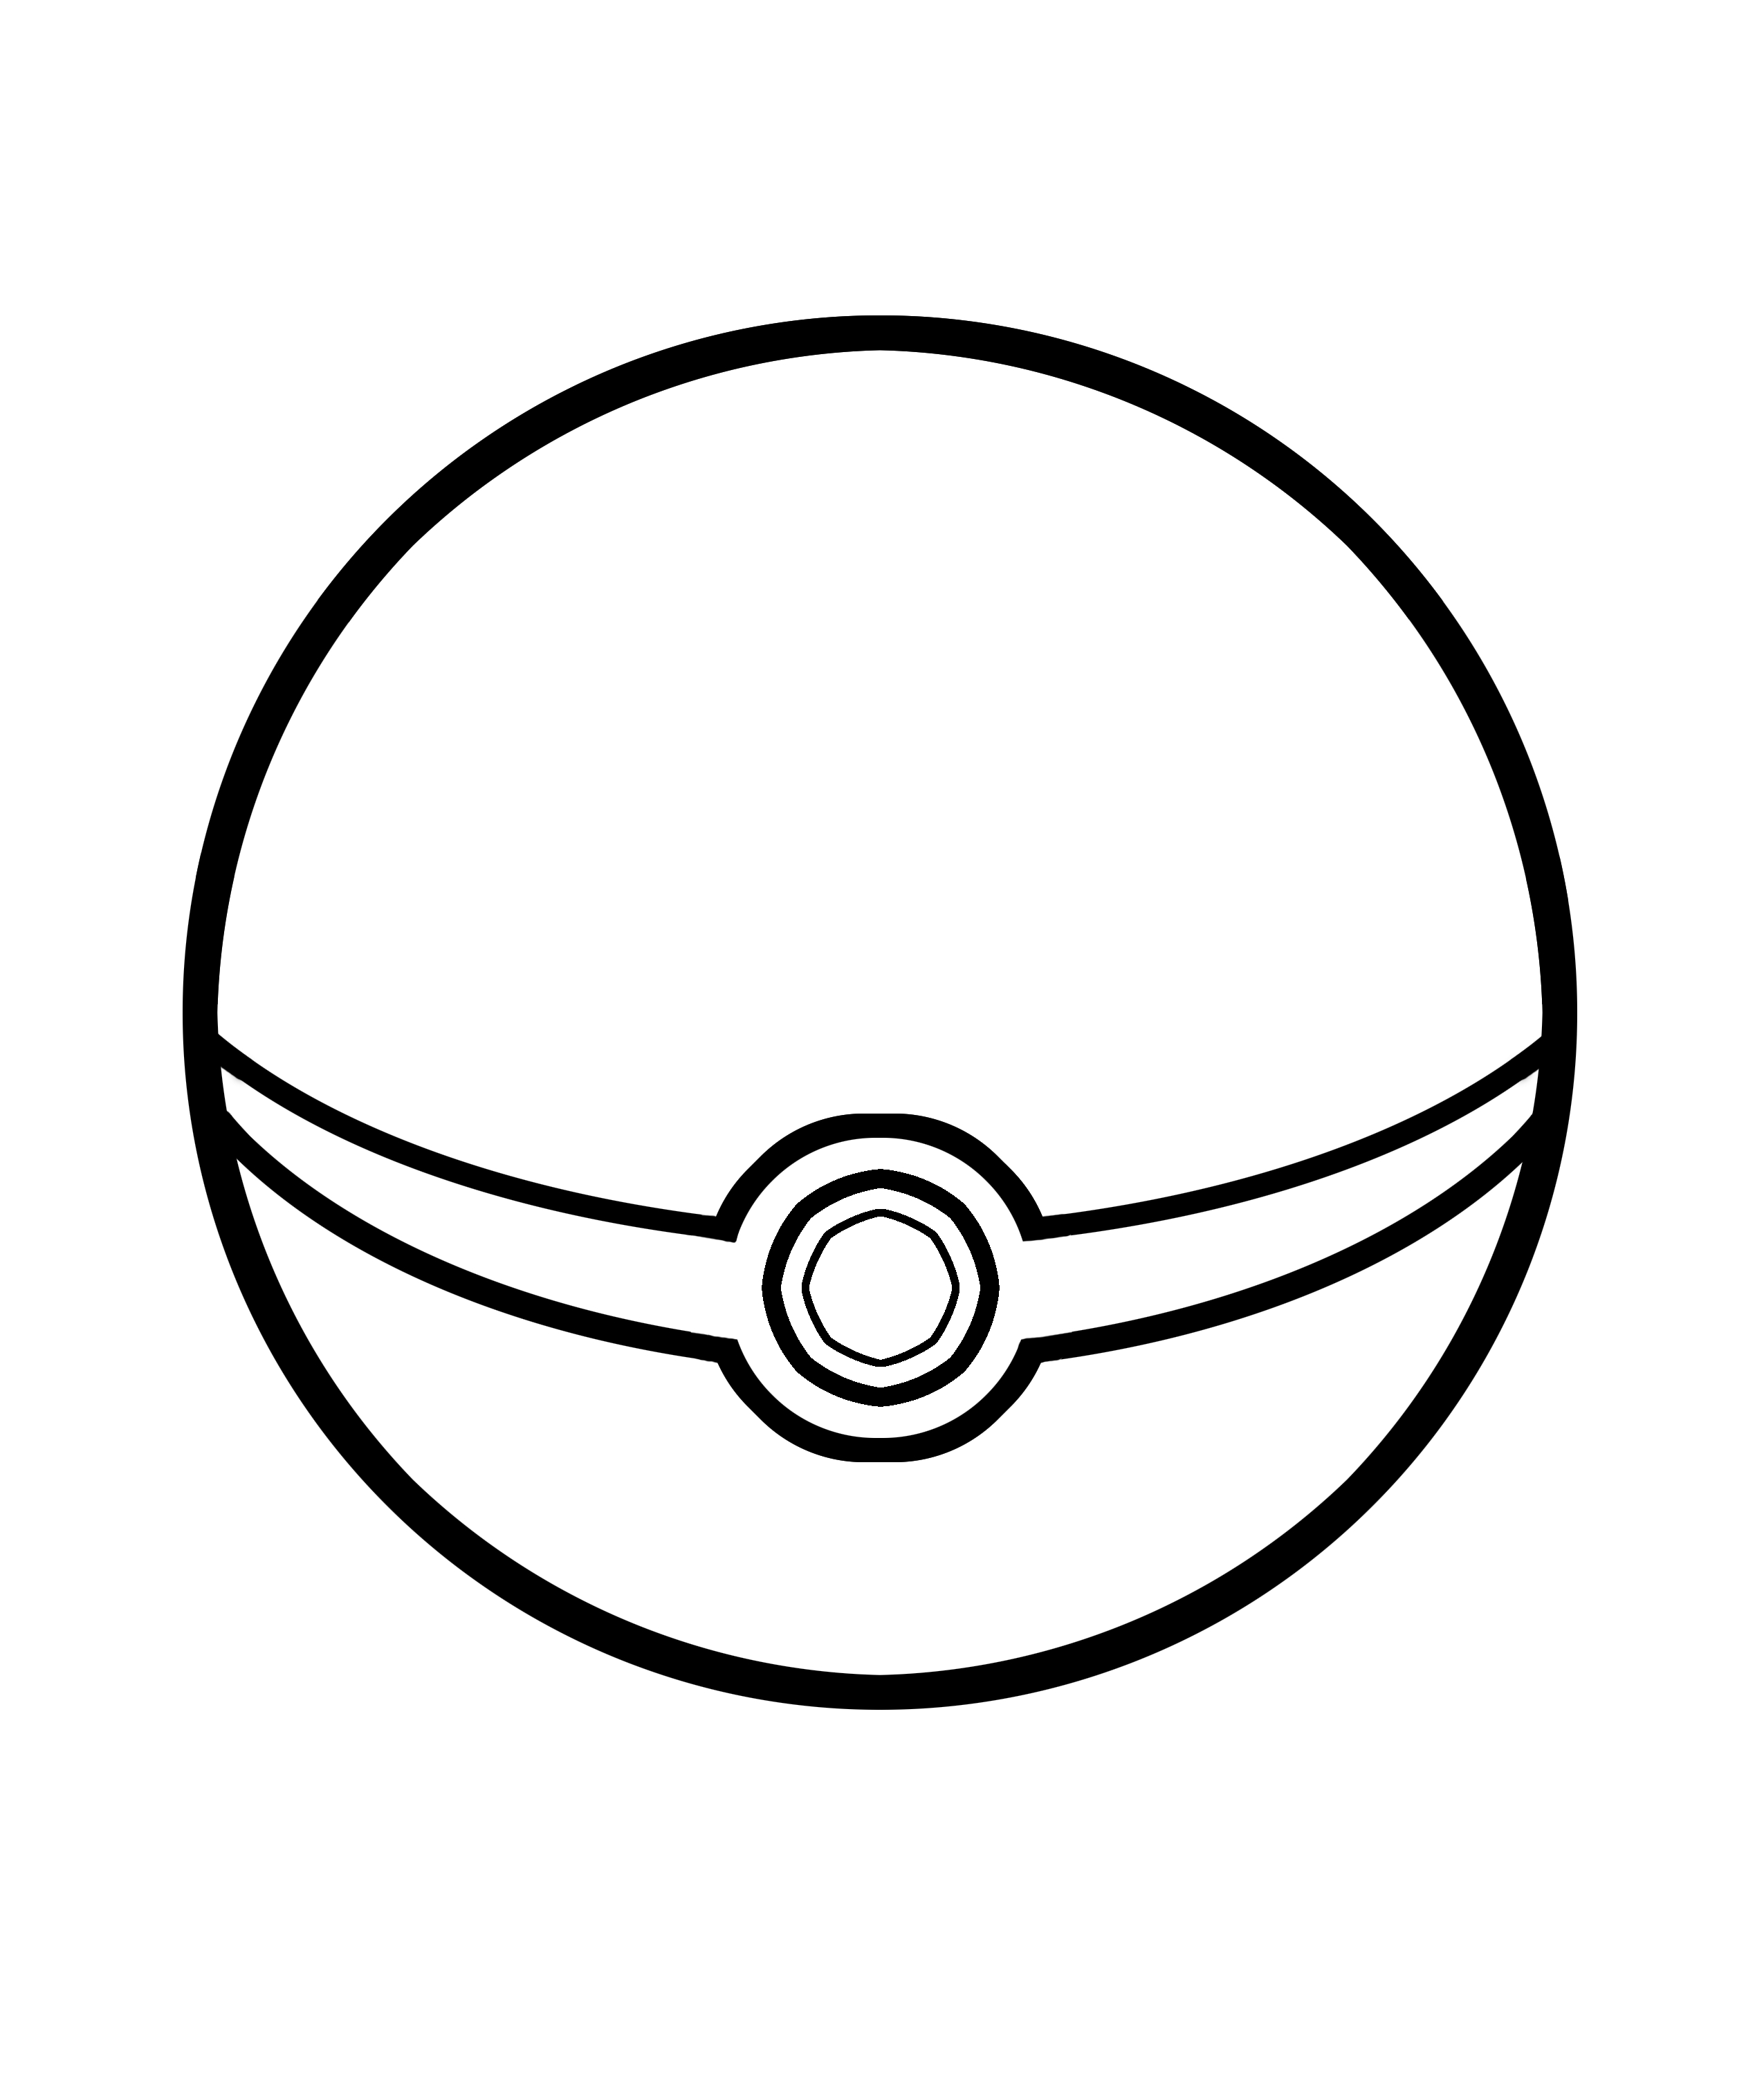 pokemon ball coloring page - pokemon ball coloring pages images